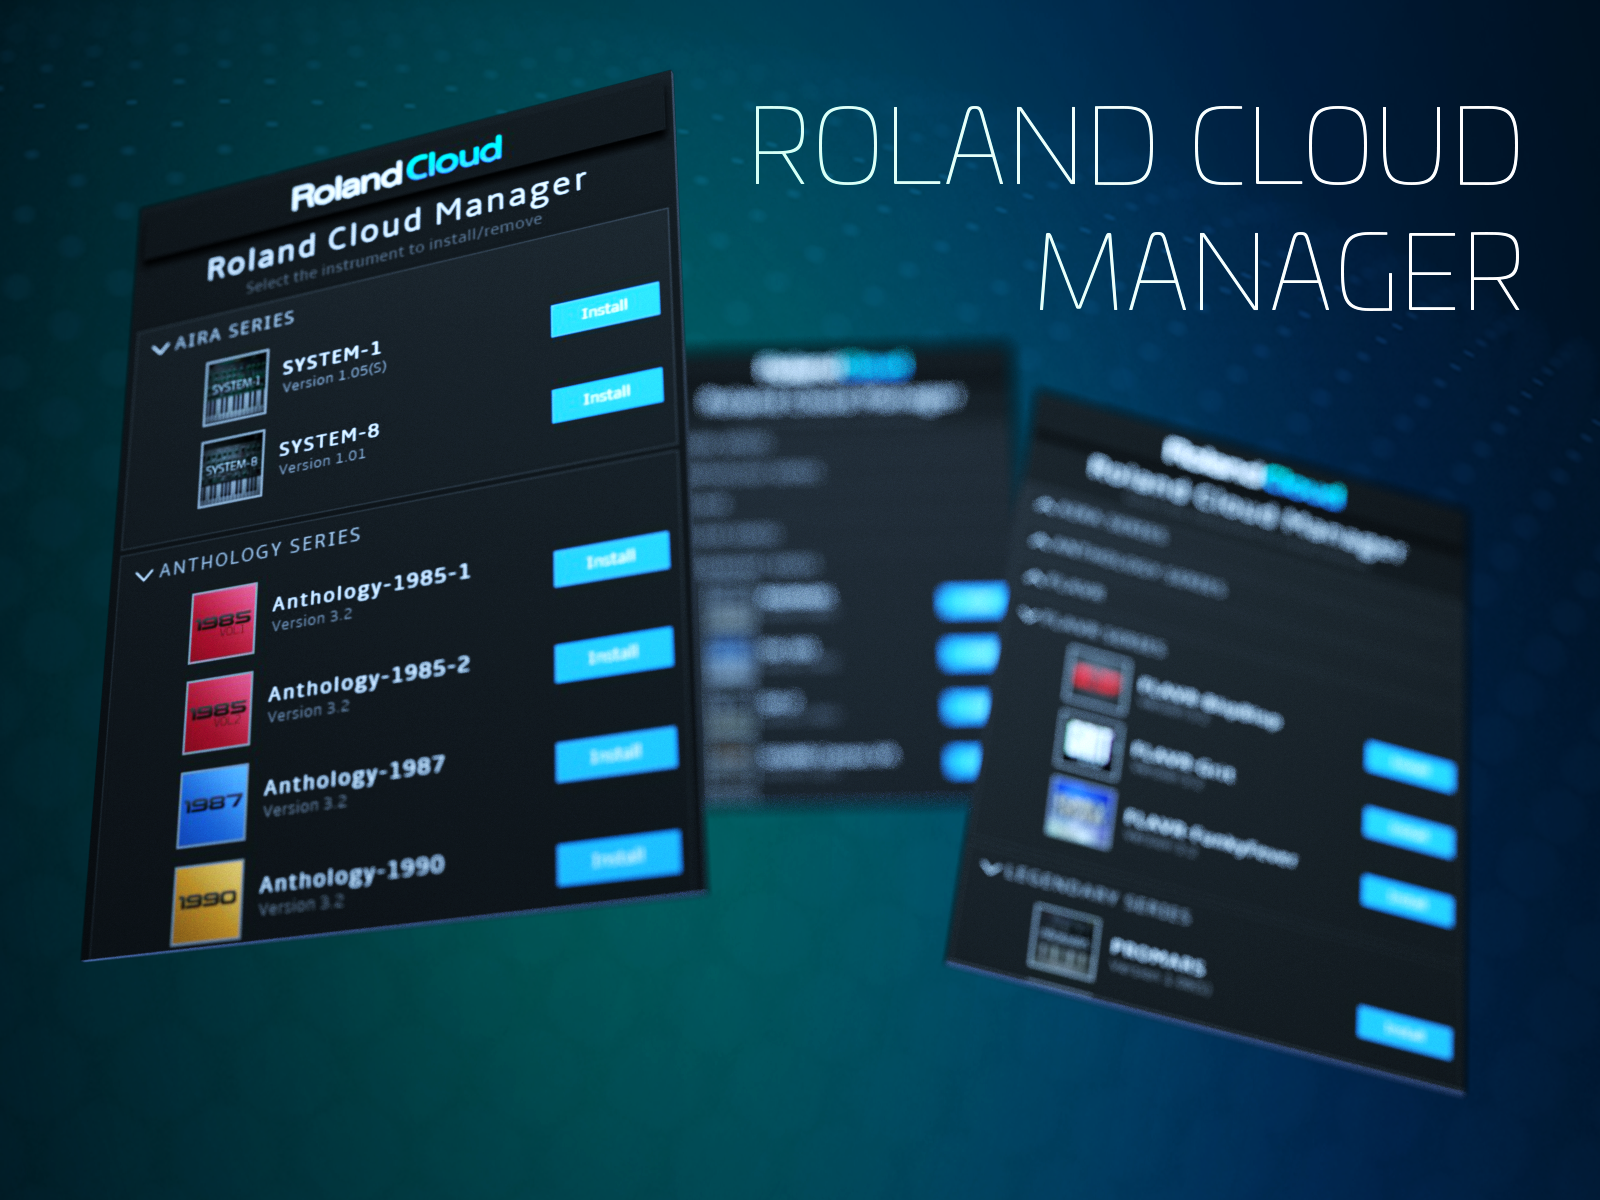 Roland Cloud Features: Virtual Instruments, Software, and Community